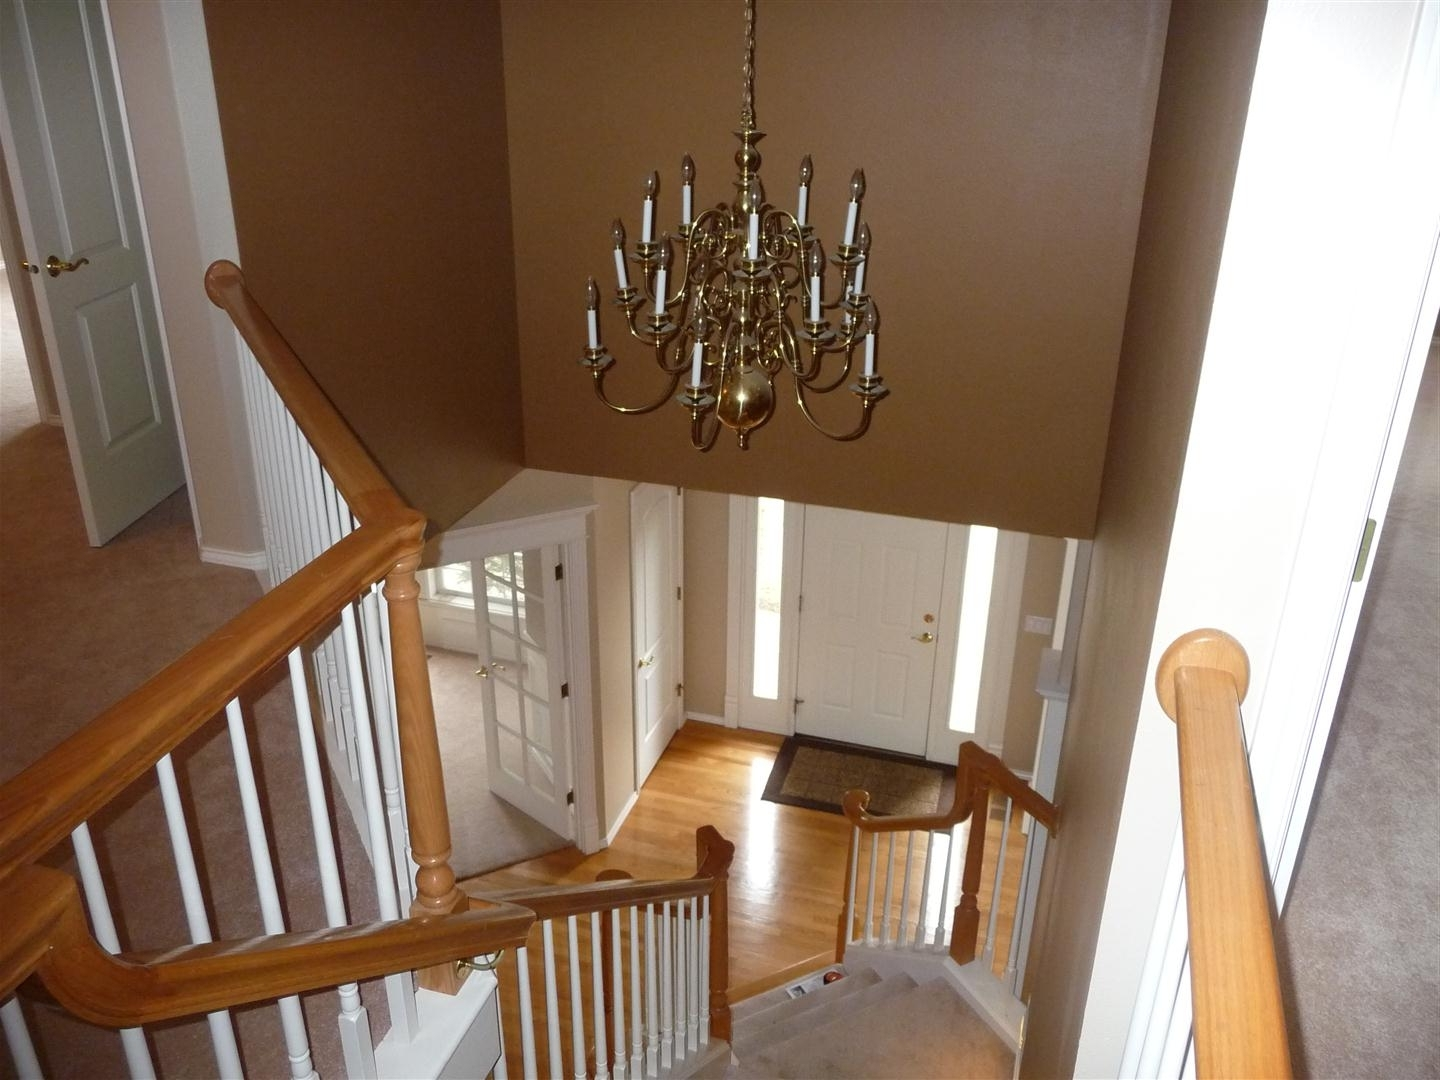 Fashionable Replacing Chandelier – Entry Is 2 Stories Tall (Phone, Painting Regarding Stairwell Chandelier Lighting (View 2 of 20)